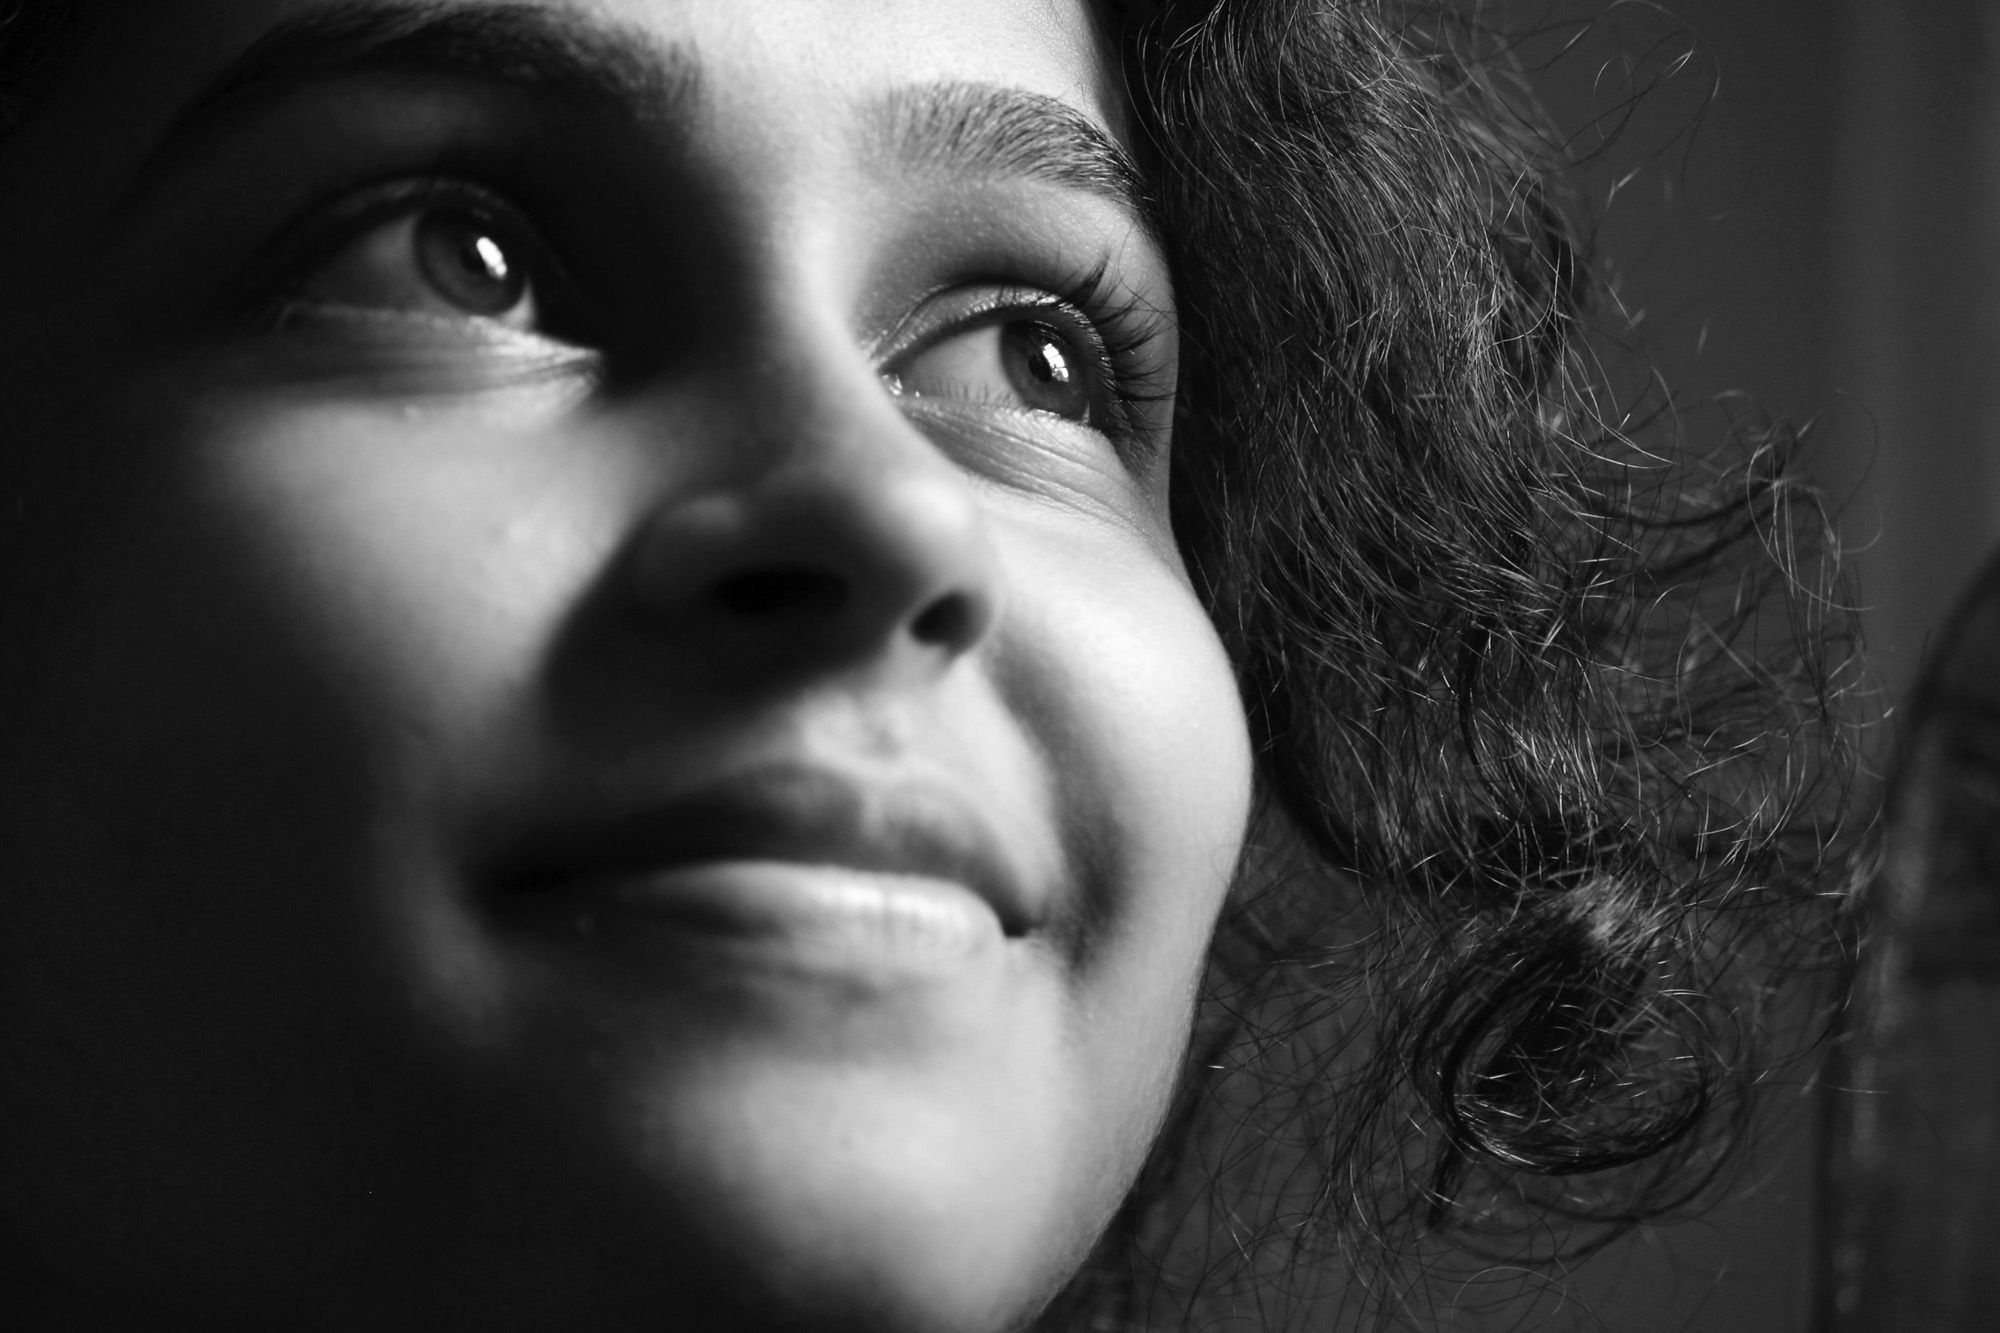 This simple photo in Black & White strongly delivers the intensity of sparkle in the eyes, which represents a ray of positive hope & the confidence. The depth of the expressions & feelings can be delivered more precisely in B&W rather than with colours.